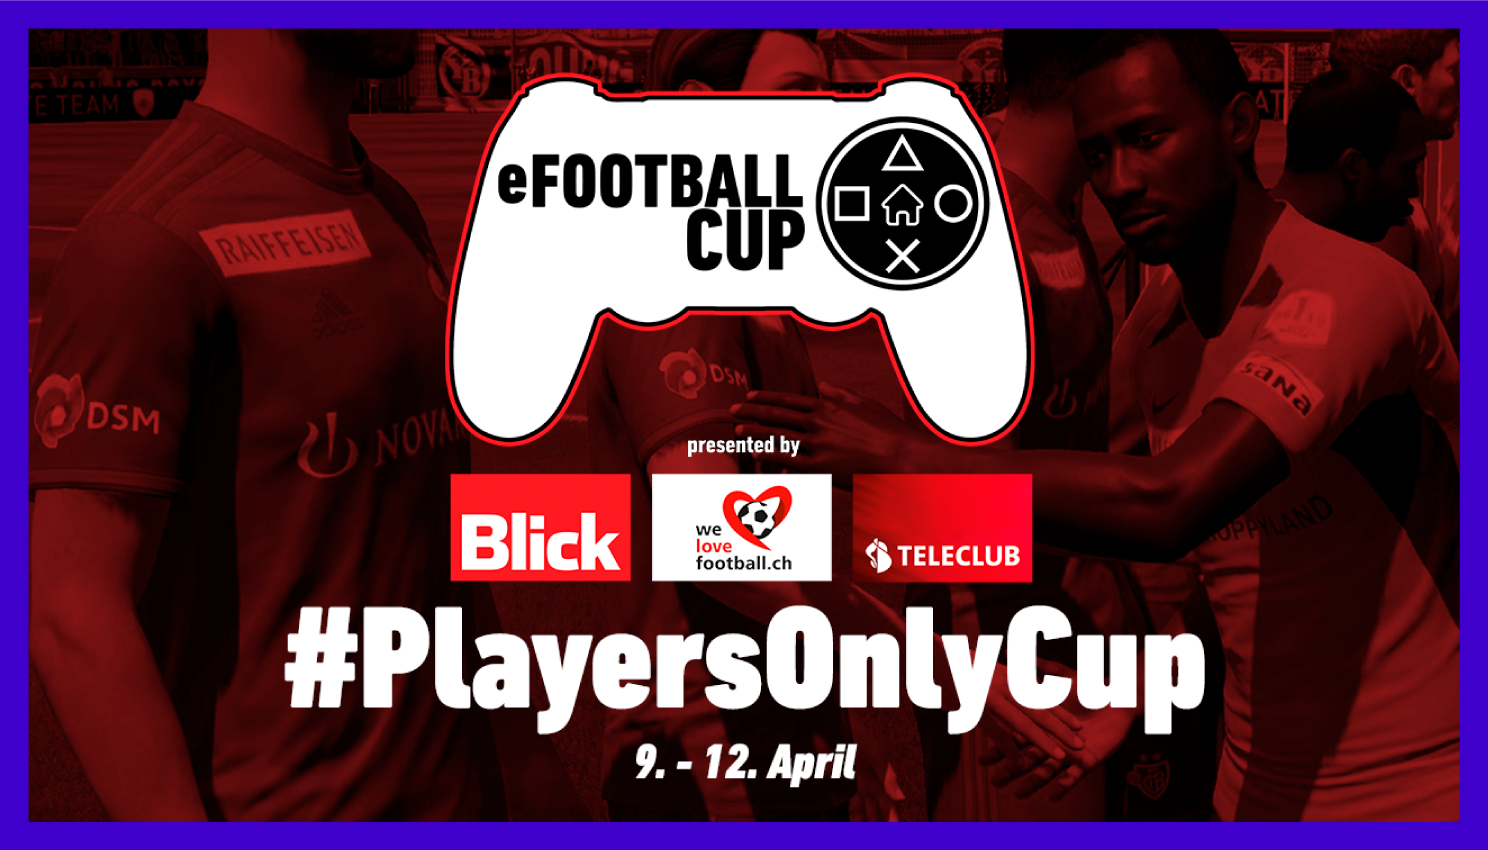 E-football cup; #playersonlycup, brought by welovefootball.ch, blick and teleclub